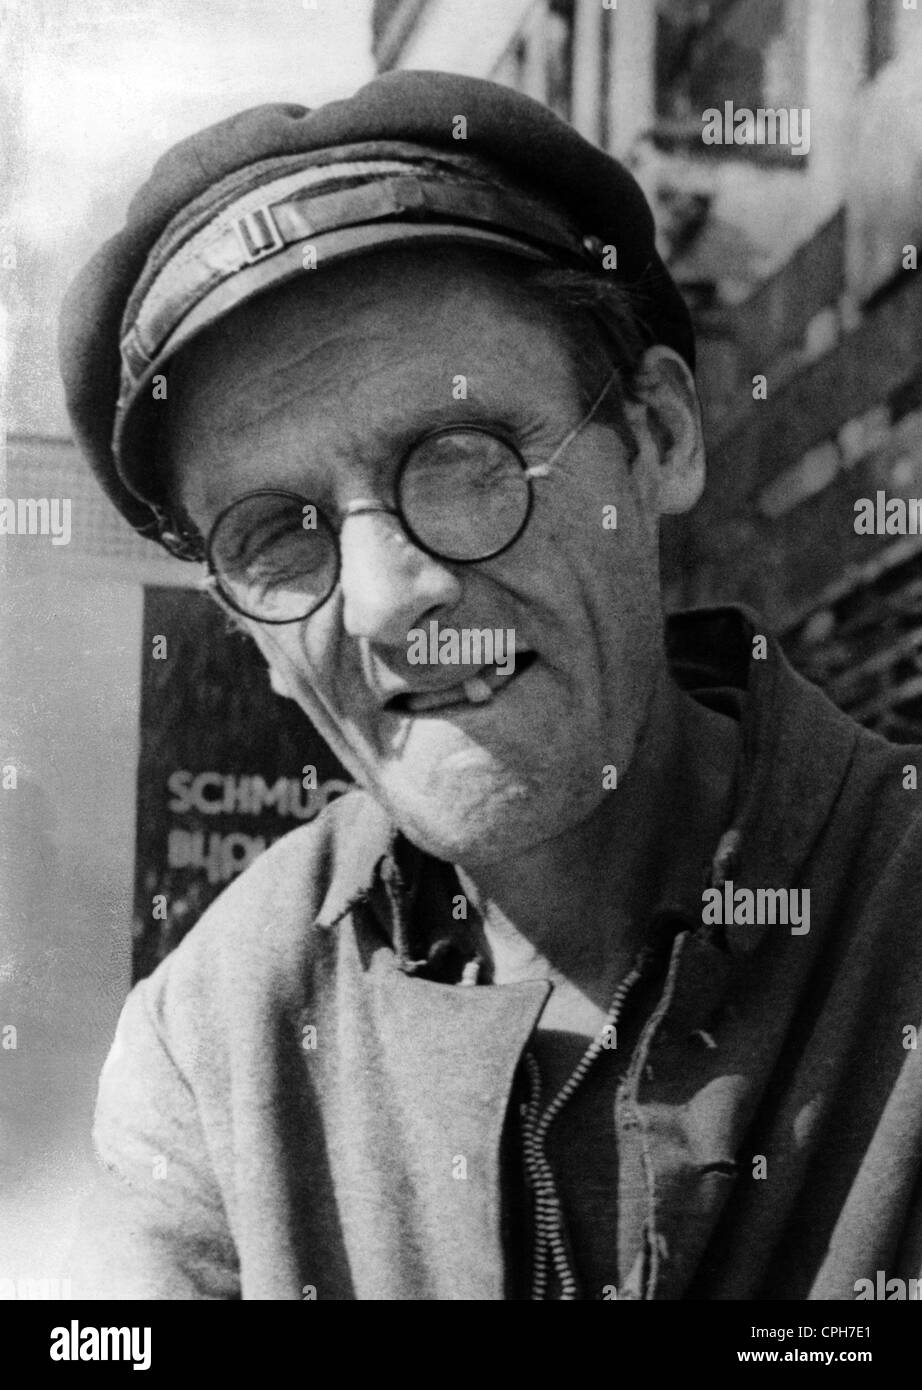 post war period, misery and hardship, Germany, poverty, fifty years old, sick of tuberculosis disabled person George - Stock Image